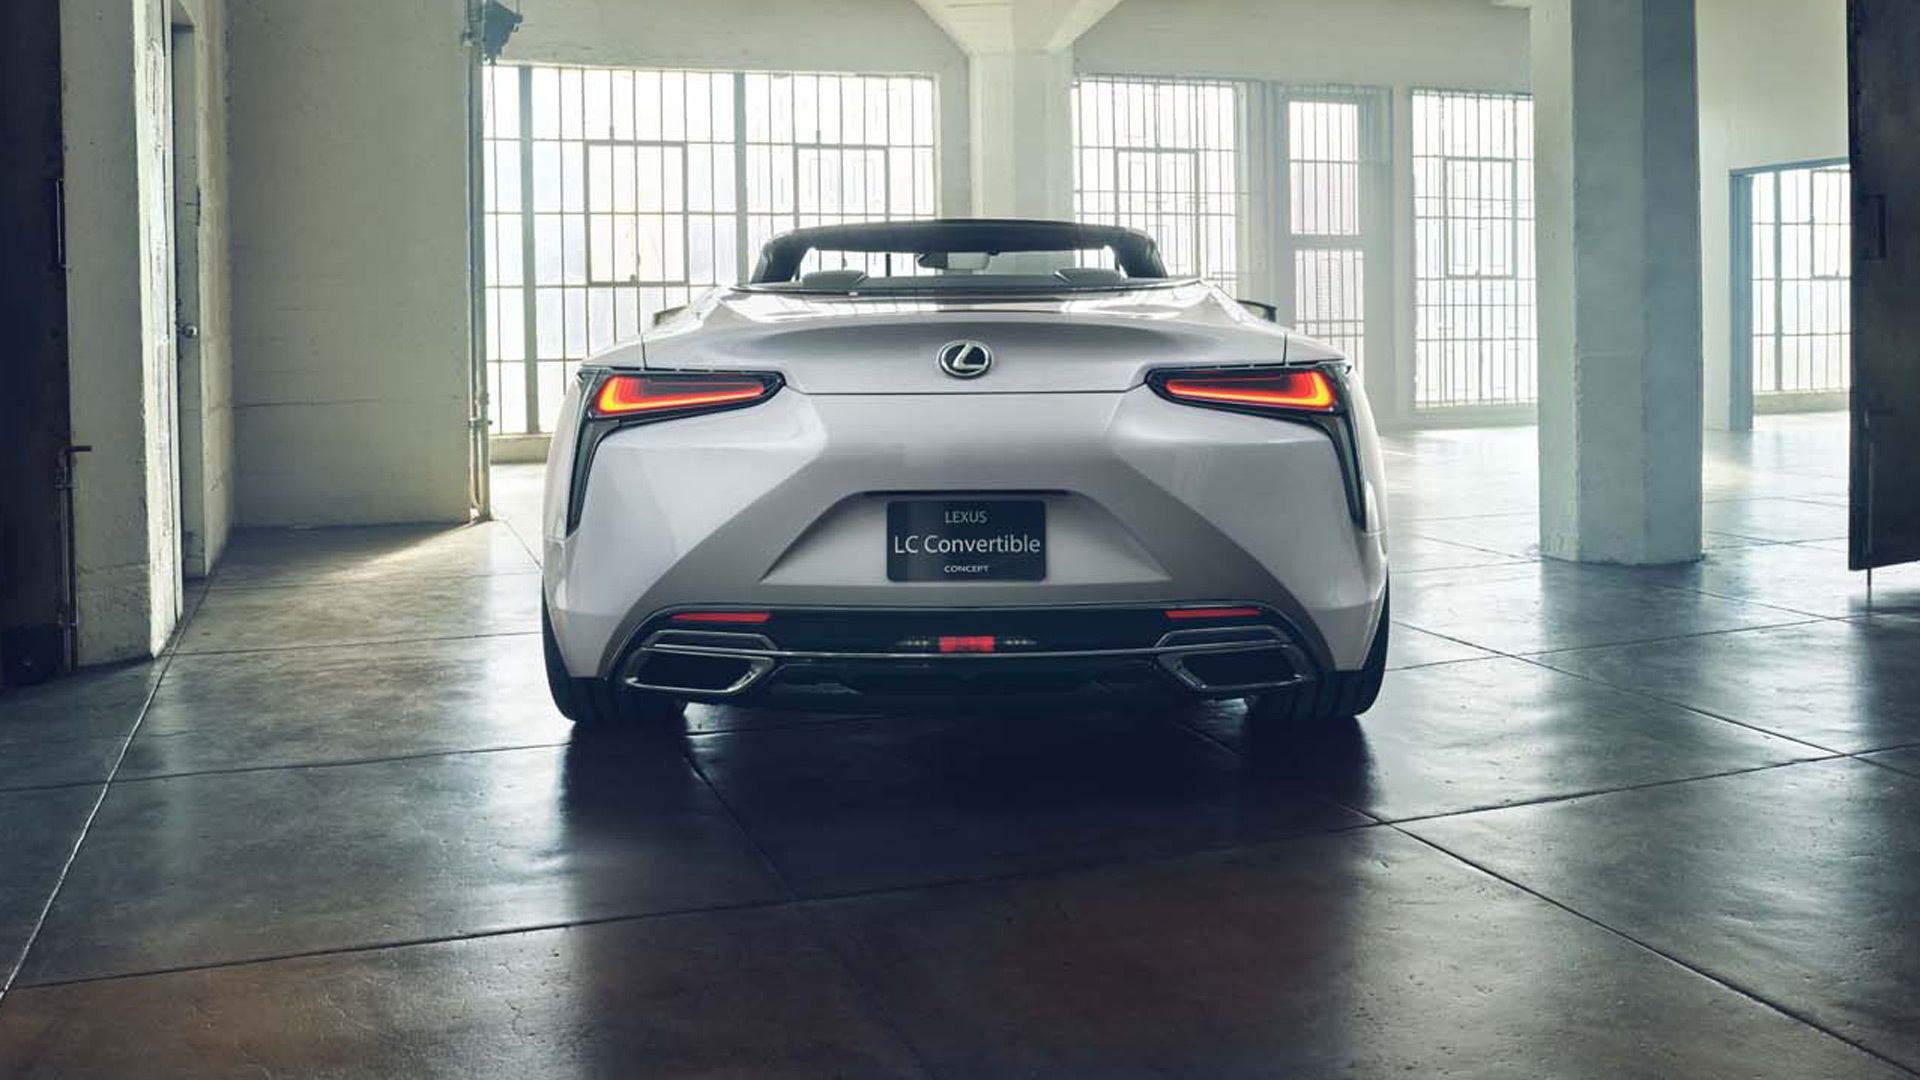 Production Lexus Lc Convertible Tipped For 2019 Goodwood Festival Of